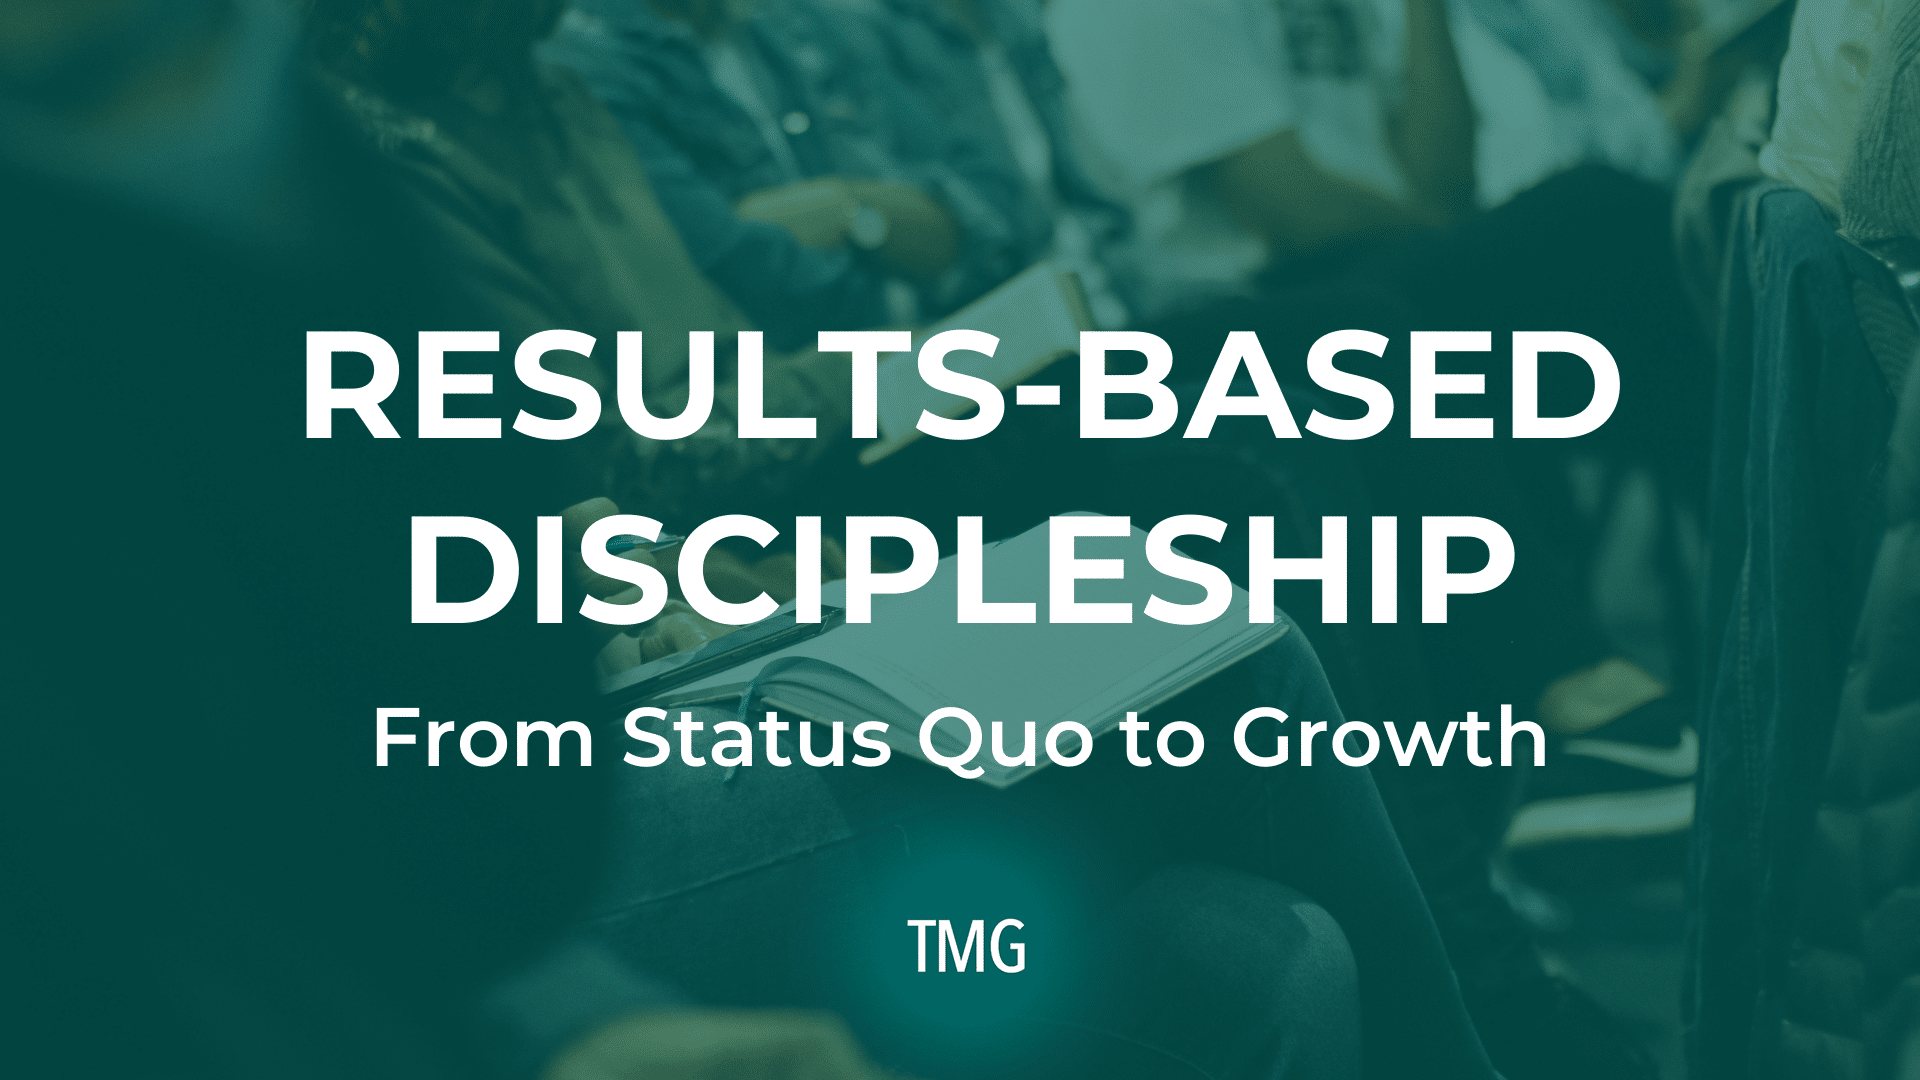 results-based-discipleship-from-status-quo-to-growth-podcast-header-image